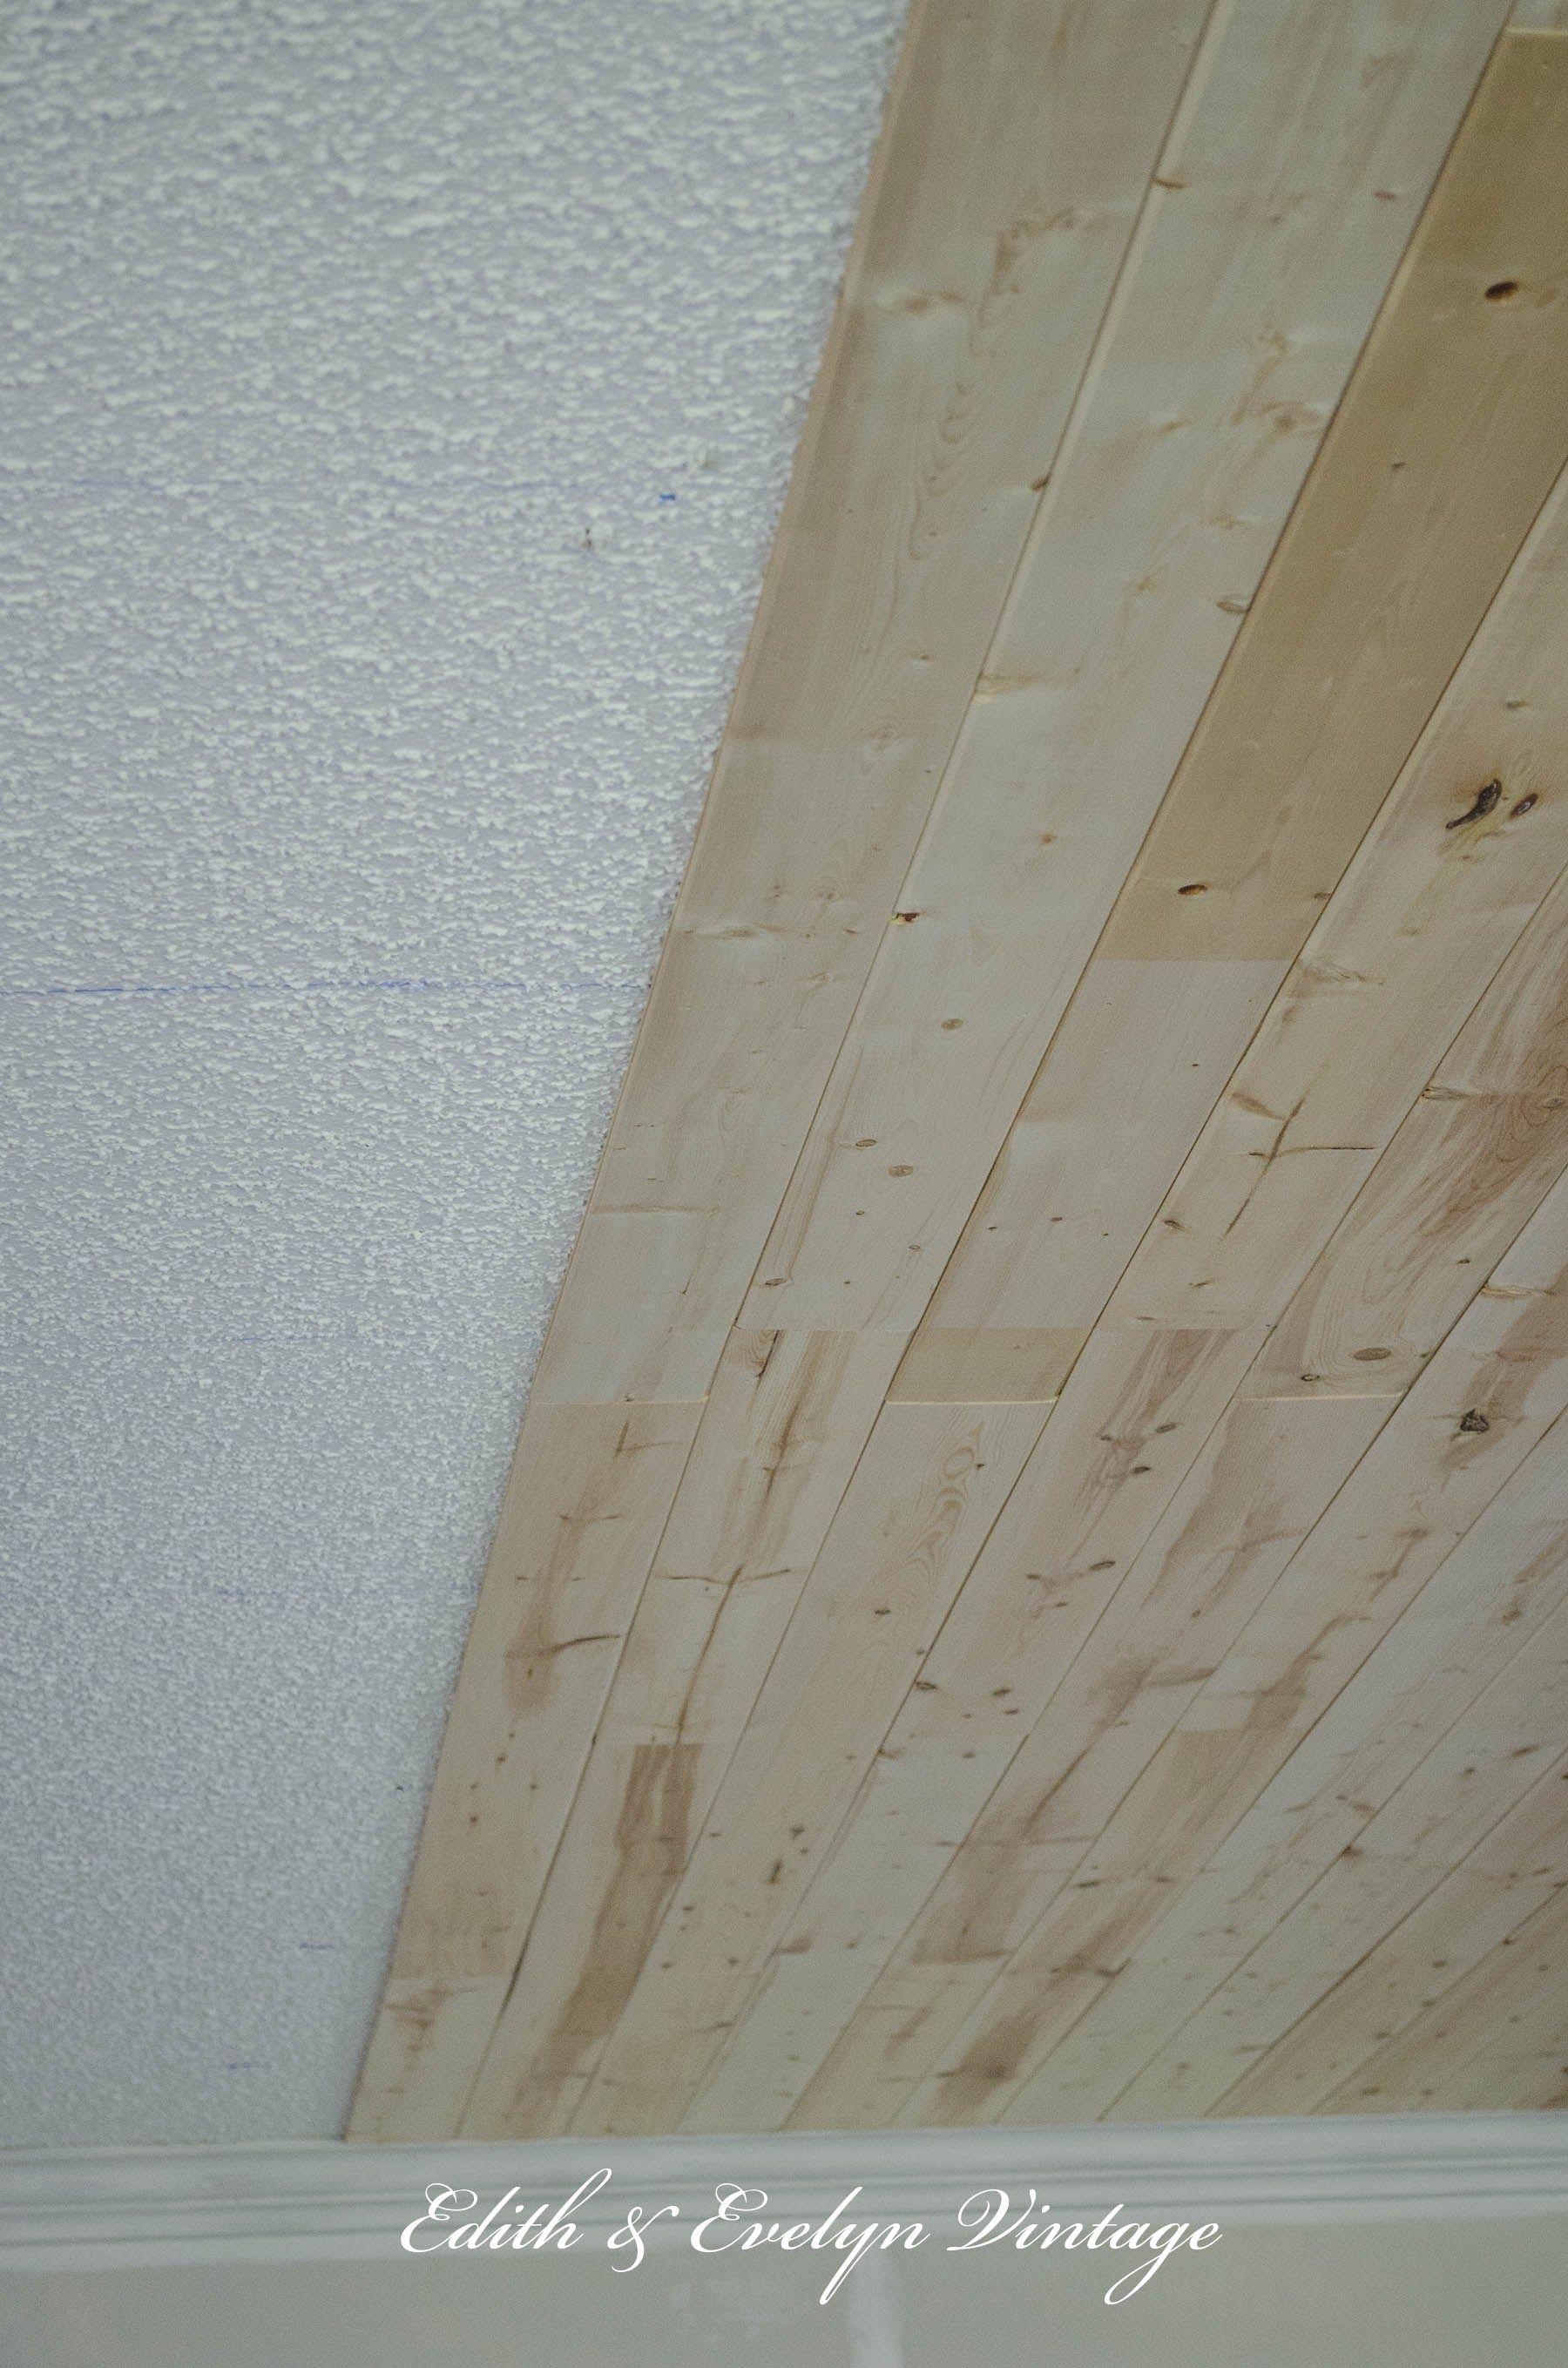 How to diy plank over a popcorn ceiling for less than 300 for how to diy plank over a popcorn ceiling for less than 300 for the home pinterest plank popcorn and ceilings dailygadgetfo Image collections